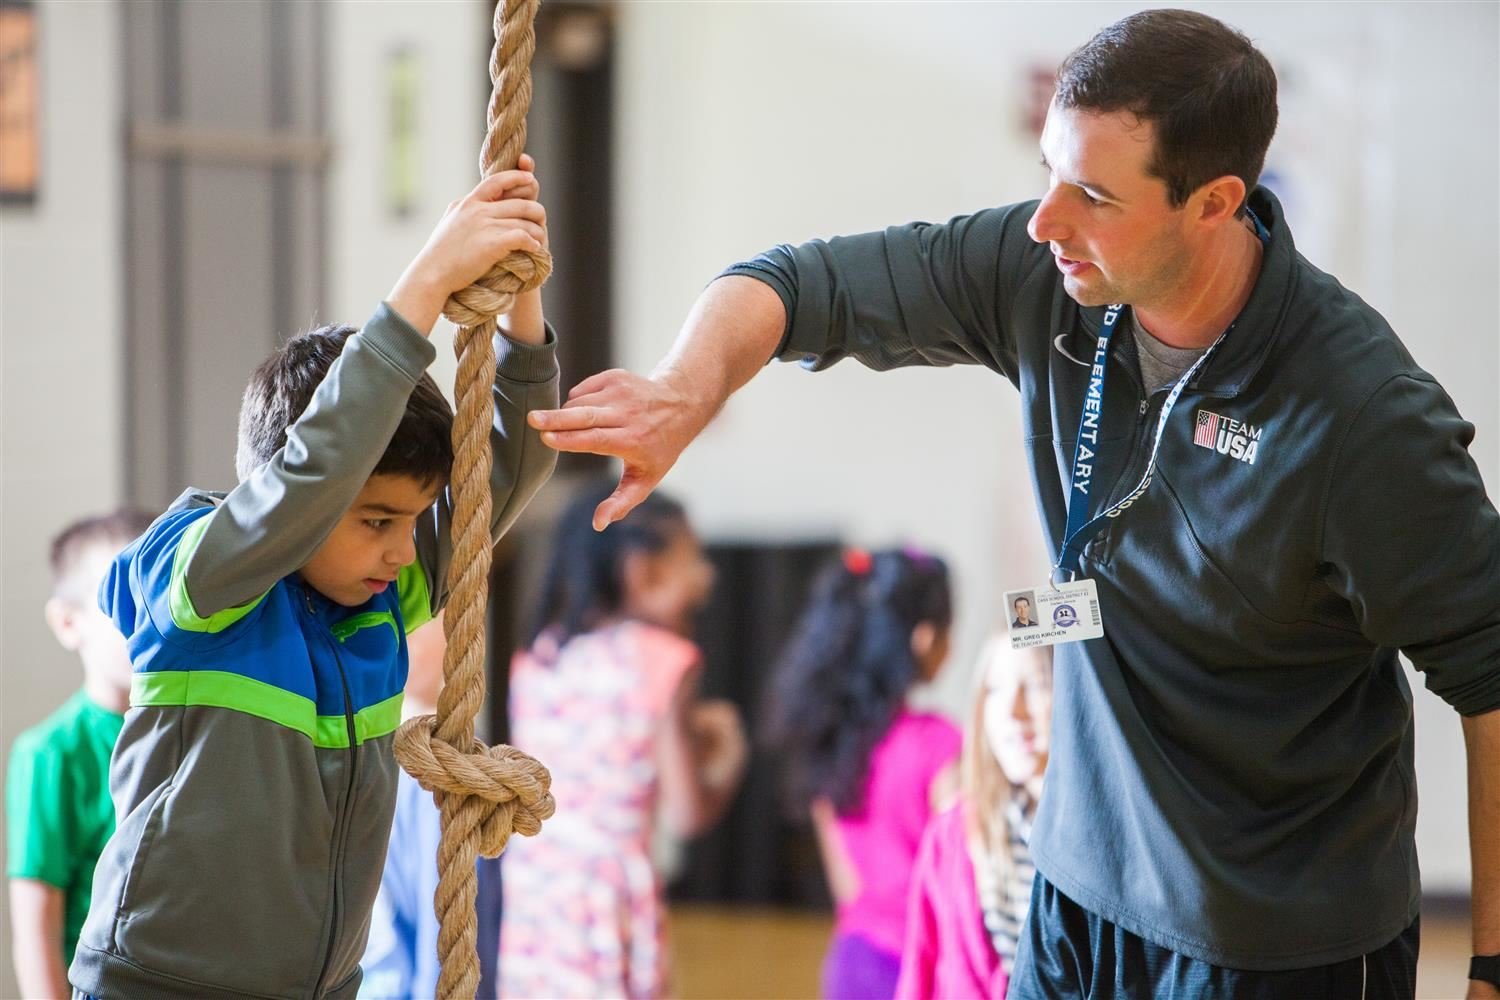 PE teacher and student climbing a rope